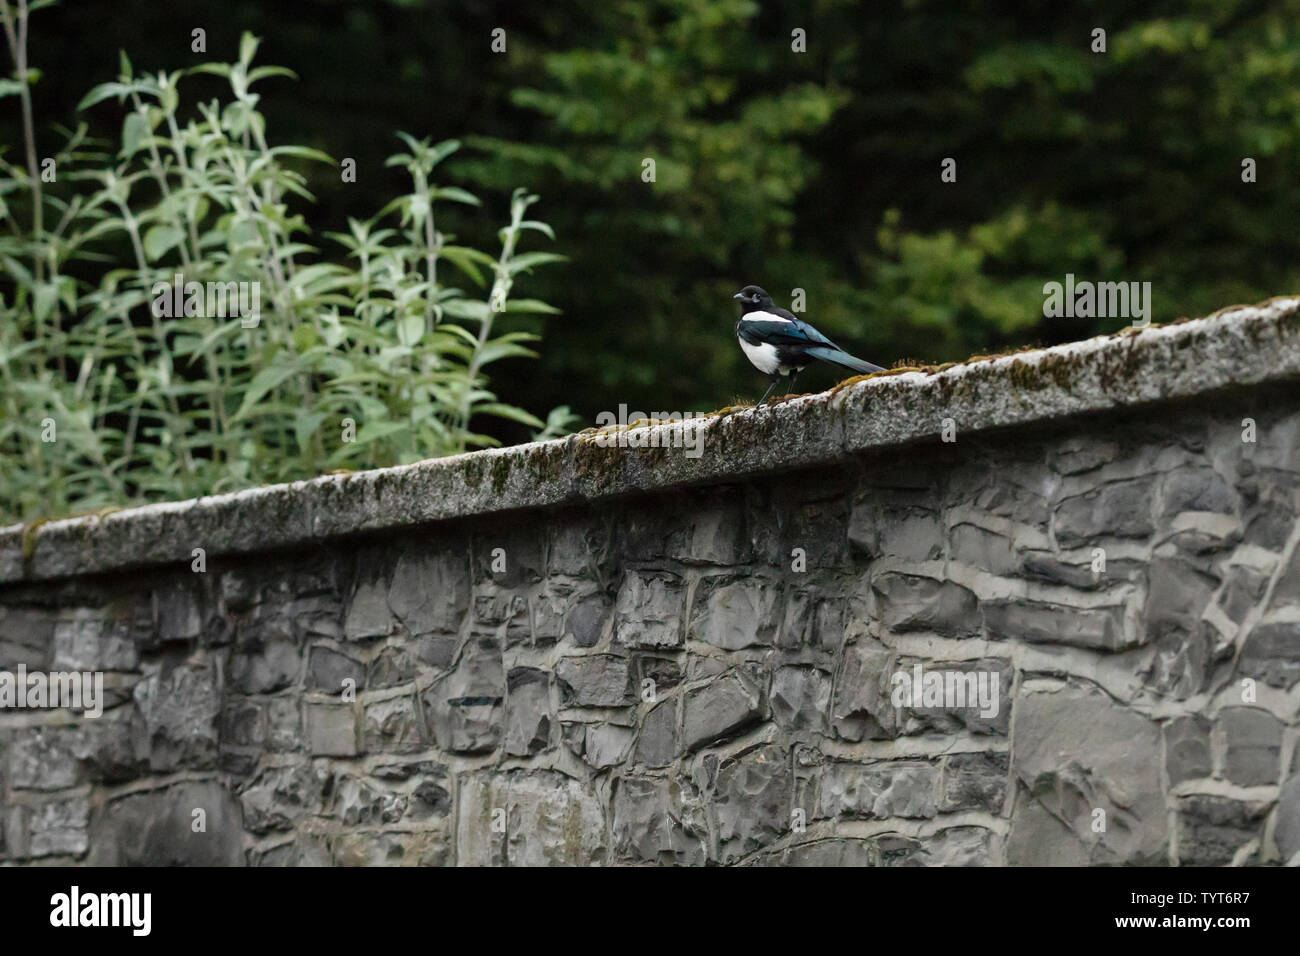 A black and white Eurasian magpie (Pica pica) perched on a stone wall at King's Inns Park in Dublin, Ireland. Stock Photo